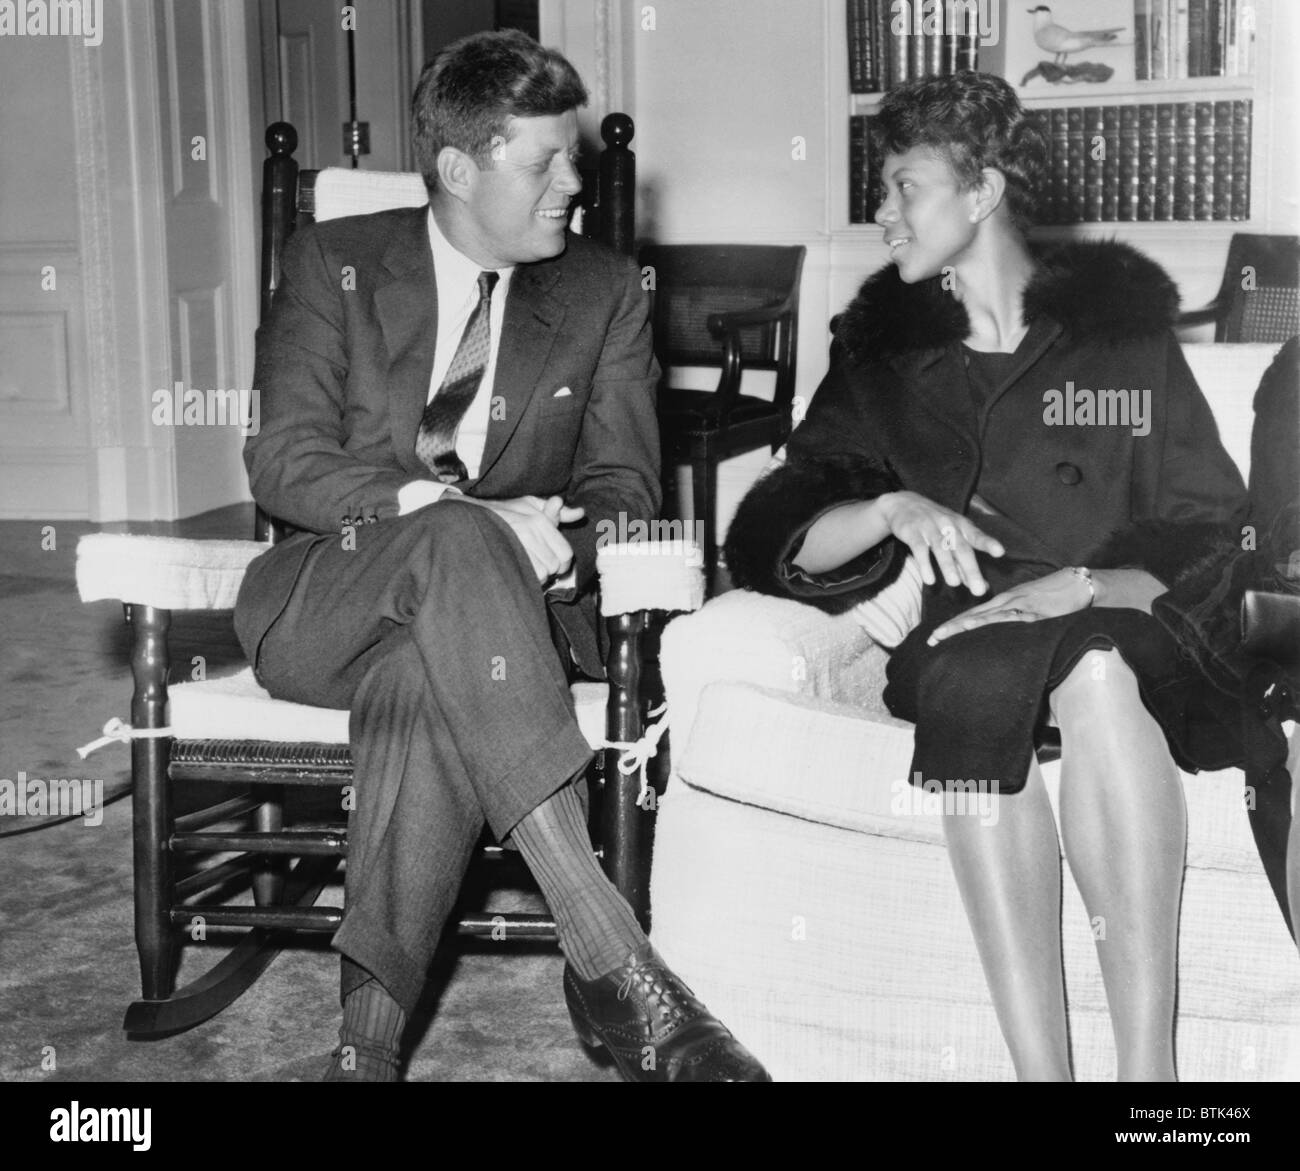 Wilma Rudolph (1940-1994) chats with President Kennedy at the White House. She was the first African American women - Stock Image